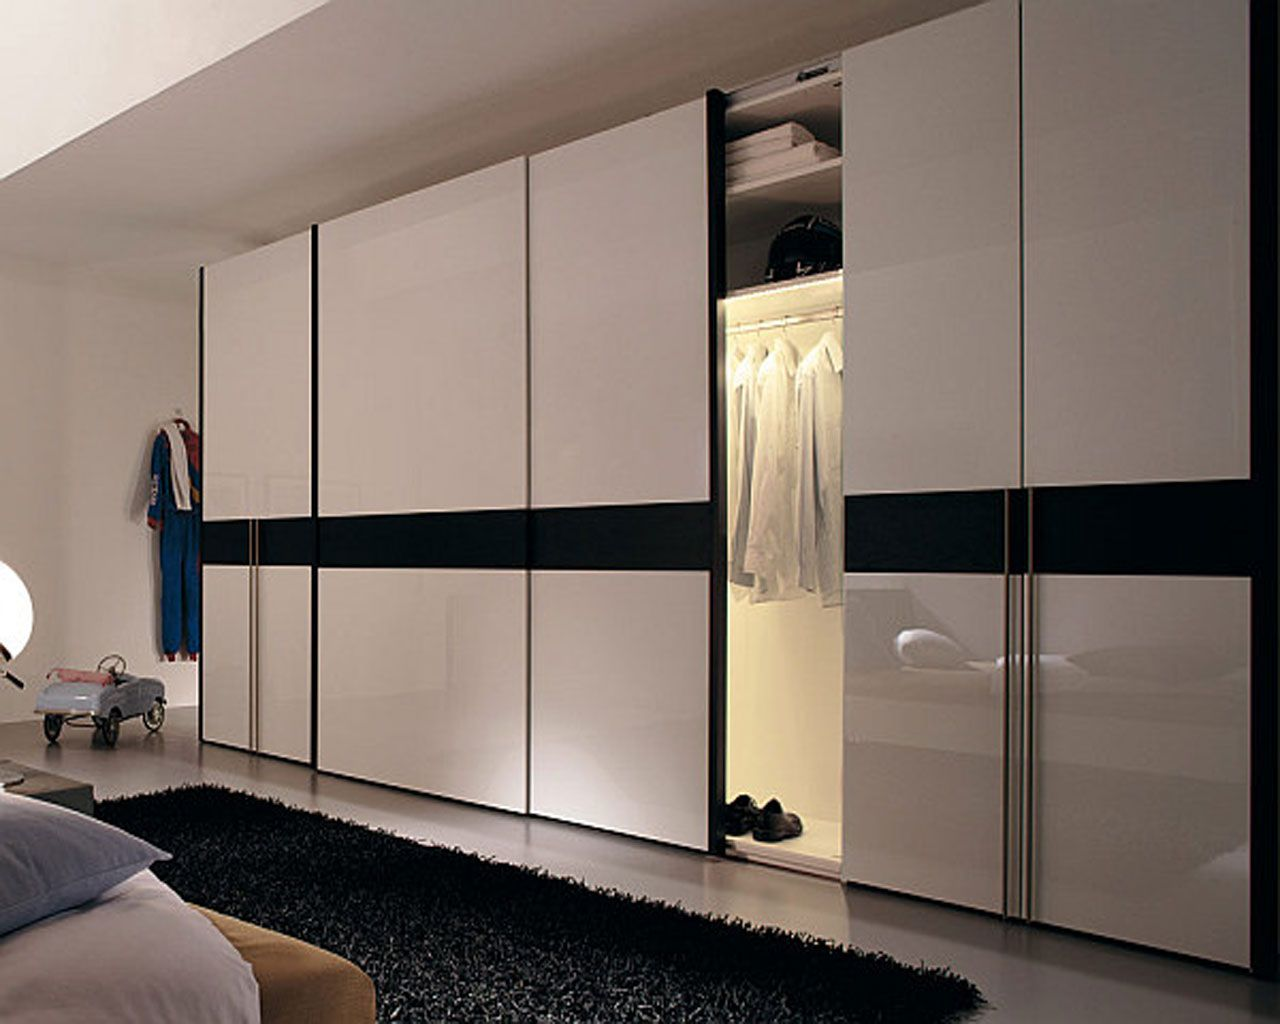 Bedroom furniture wardrobes - Extra Large Wardrobe Design With Sliding Doors And White Gloss Color